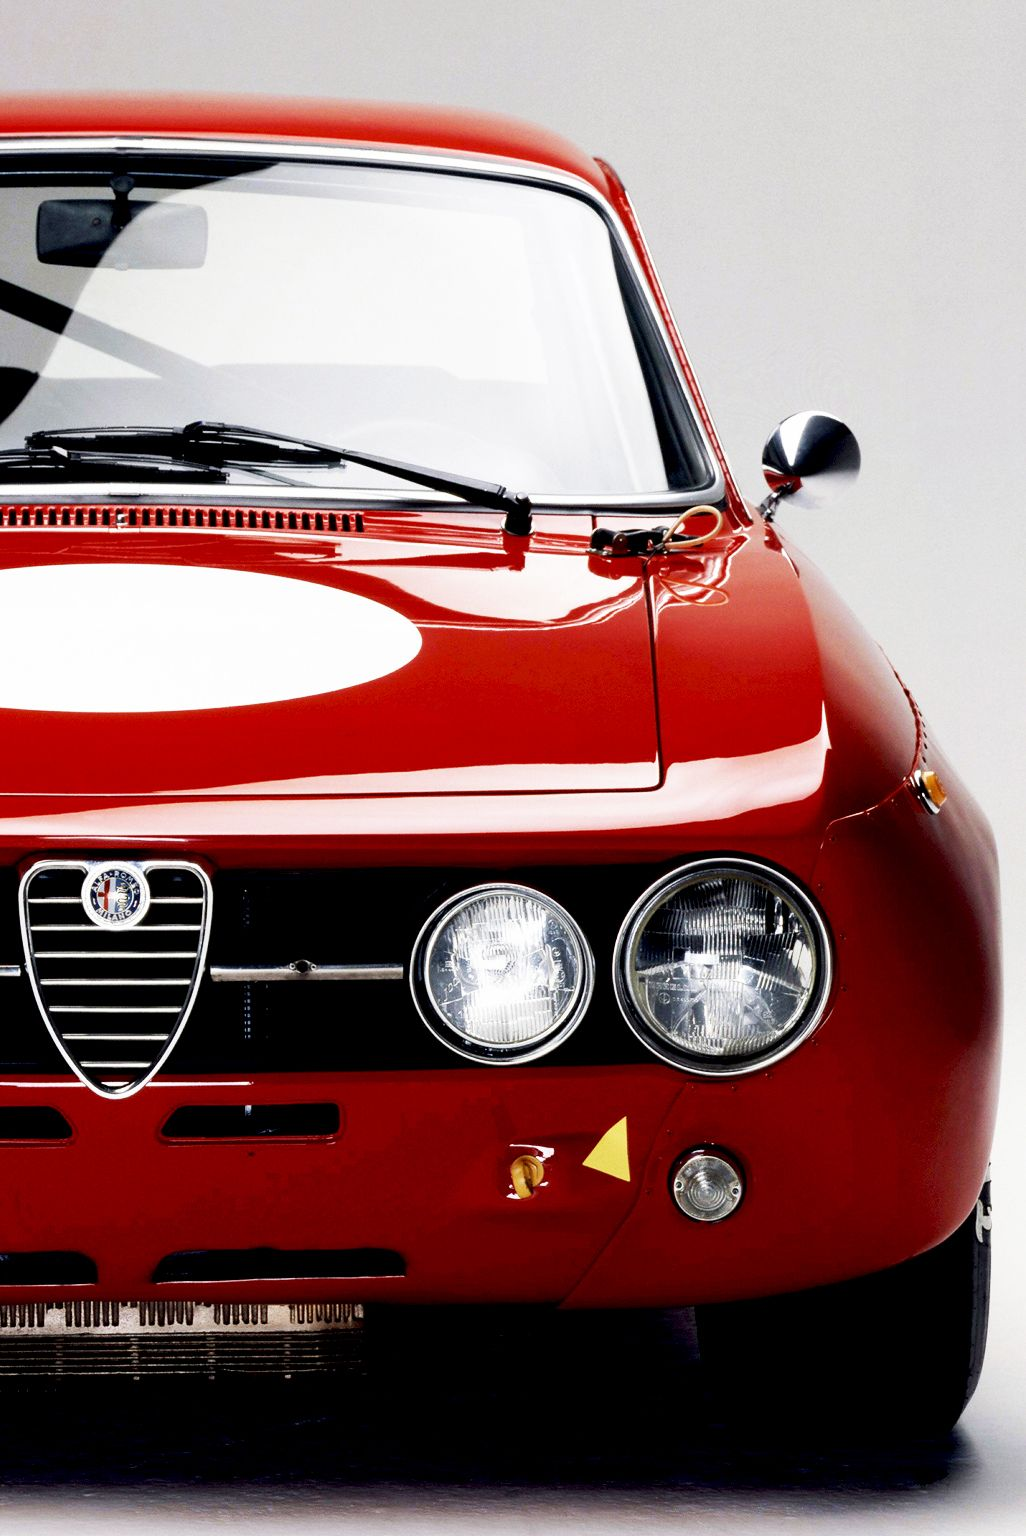 Do You Know What The Acronym Alfa Stands For Its Always Looking Romeo Gt 1300 Junior Restoration Windscreen Wiper Motor Another Which Will Become Name Of Your Mania Should Acquire One